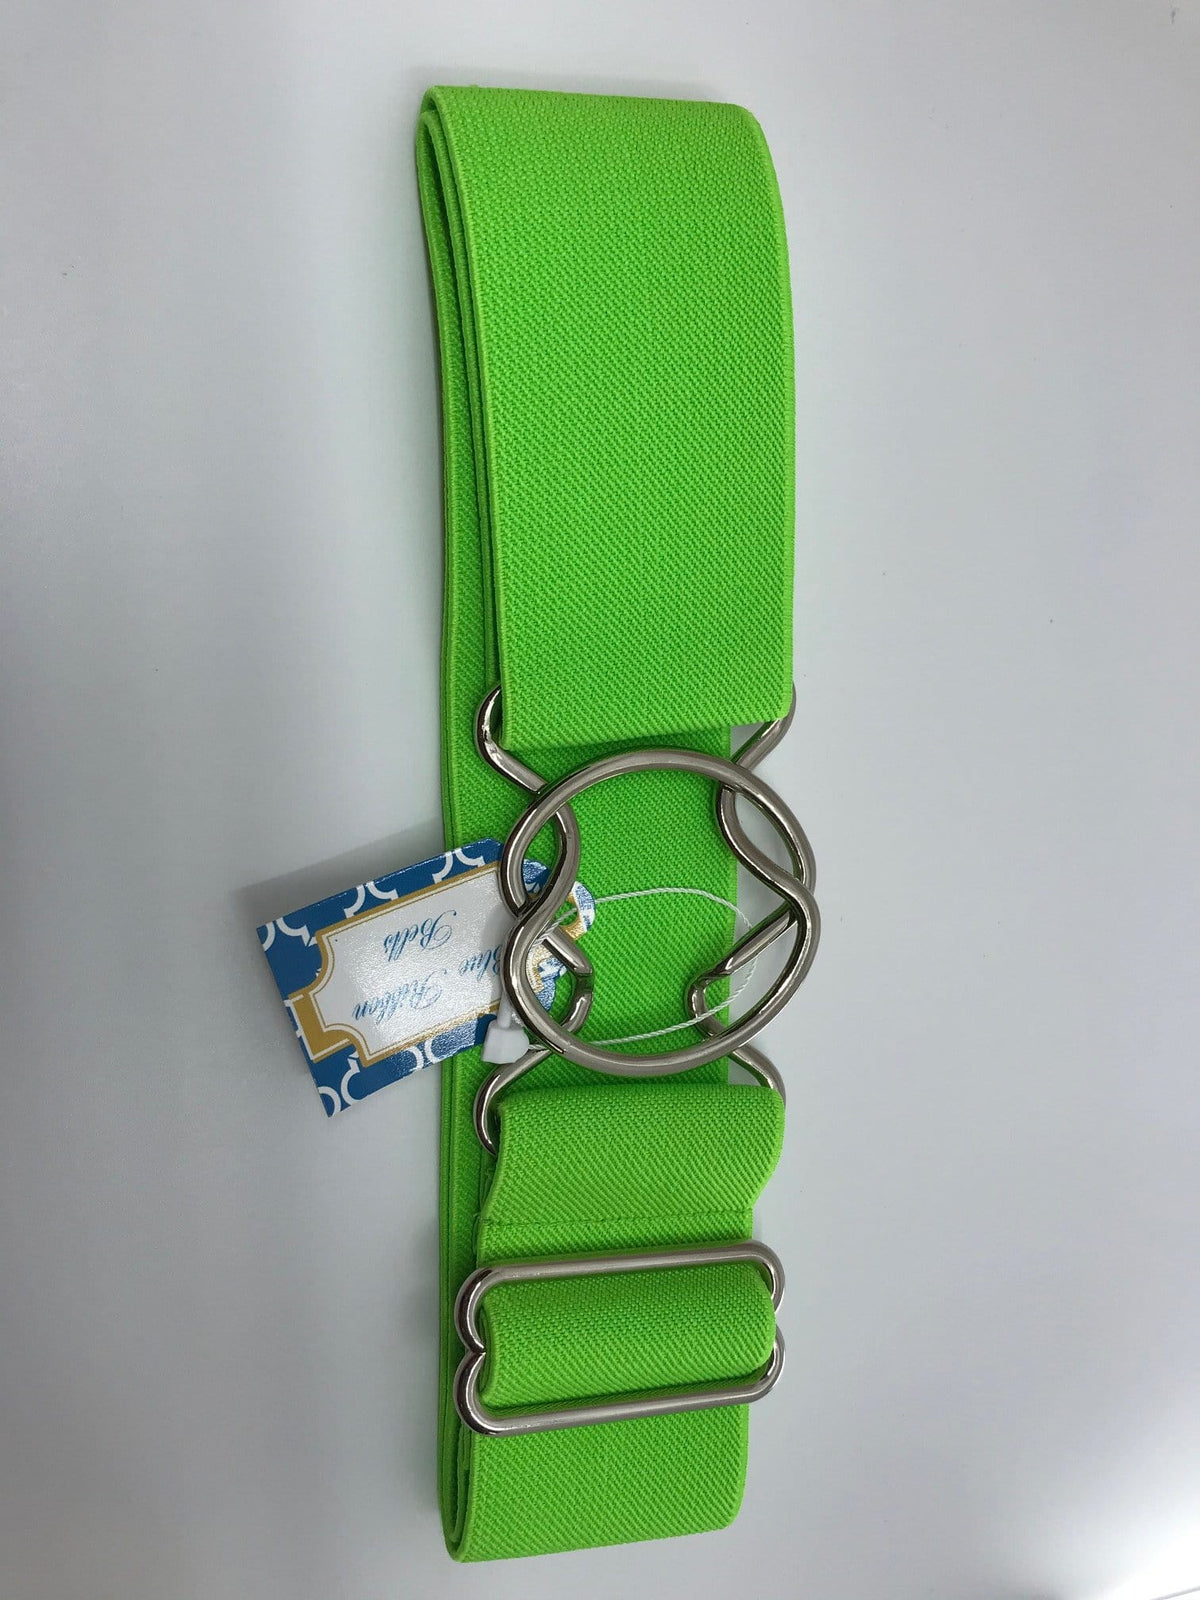 Blue Ribbon Belts Belt Bright Lime Blue Ribbon Belts - 2 Inch equestrian team apparel online tack store mobile tack store custom farm apparel custom show stable clothing equestrian lifestyle horse show clothing riding clothes horses equestrian tack store